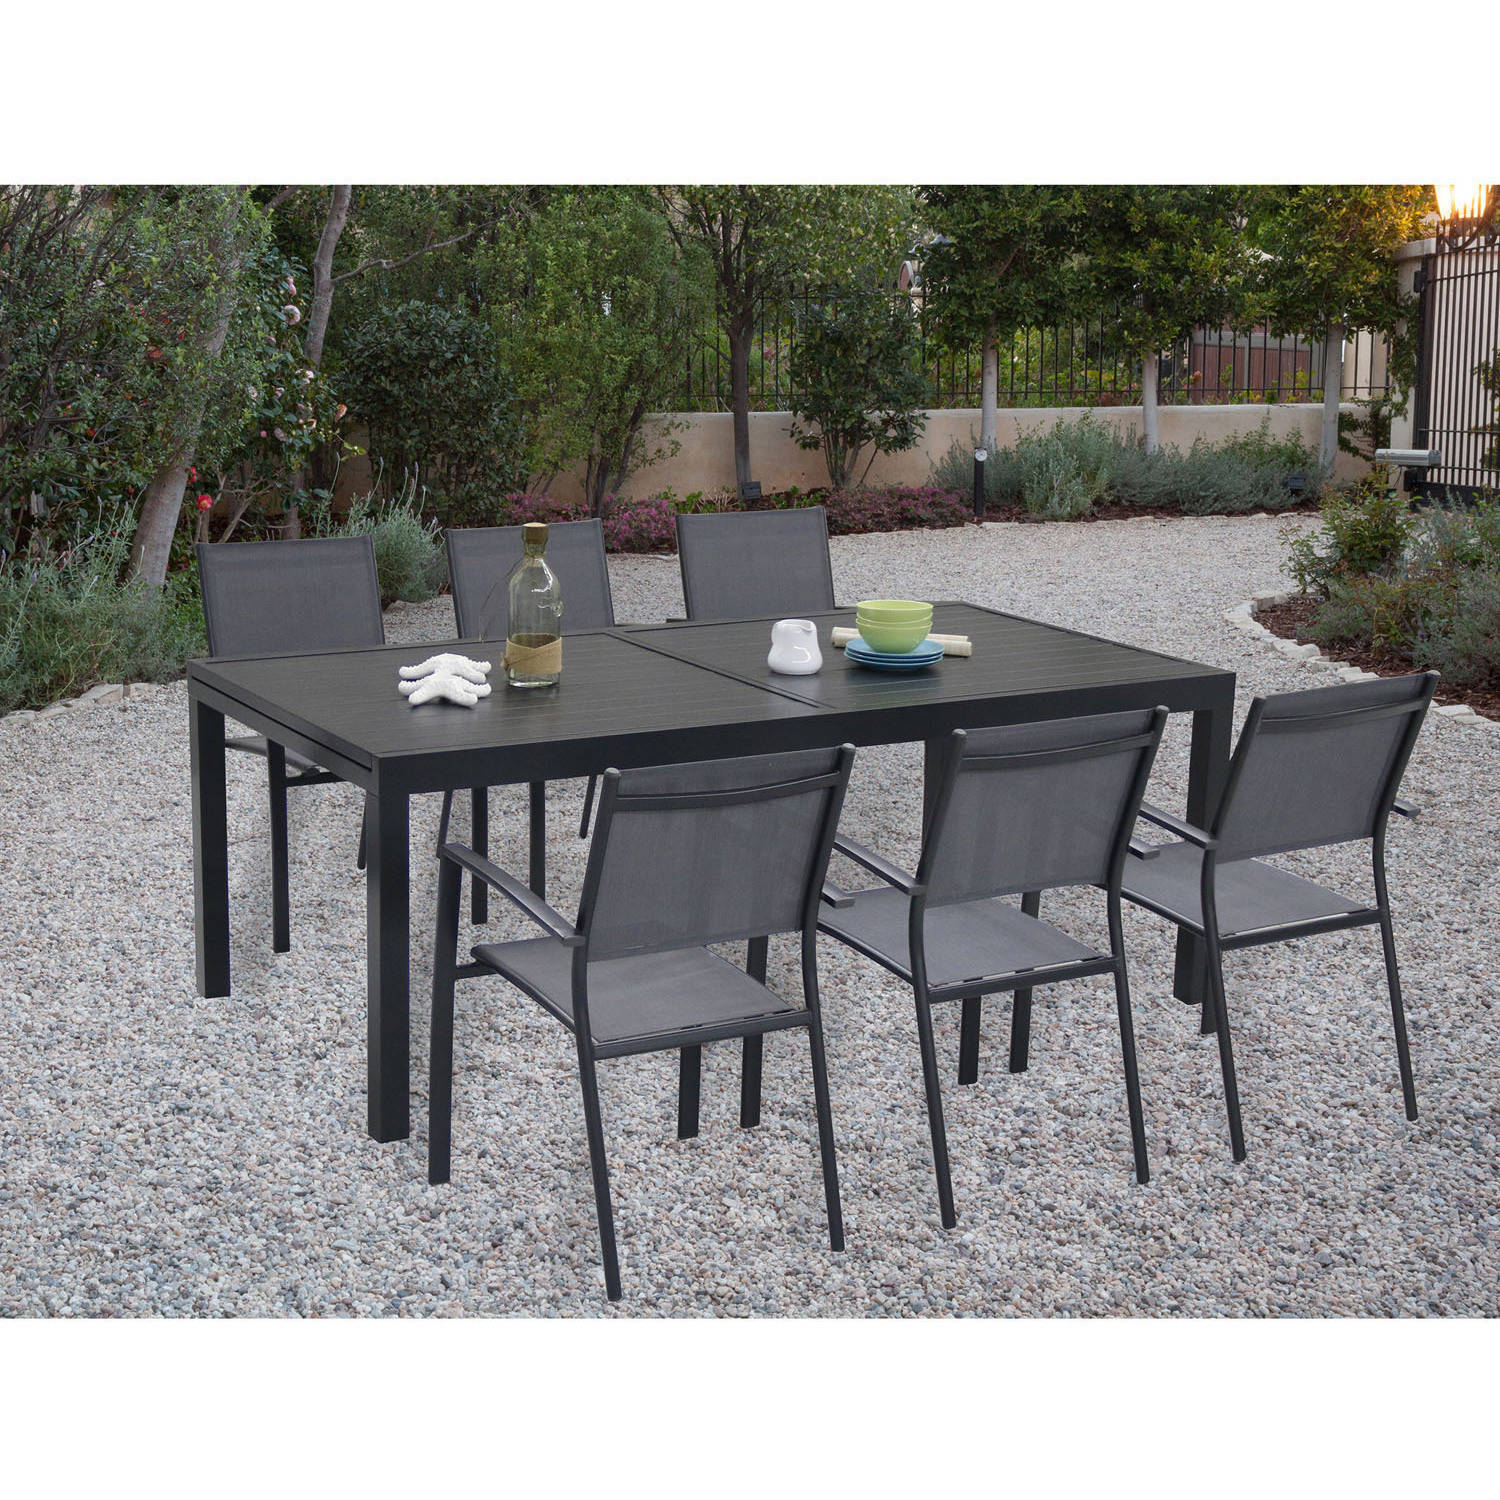 Cambridge Outdoor Nova 7-Piece Dining Room Set, Grey by Cambridge Outdoor